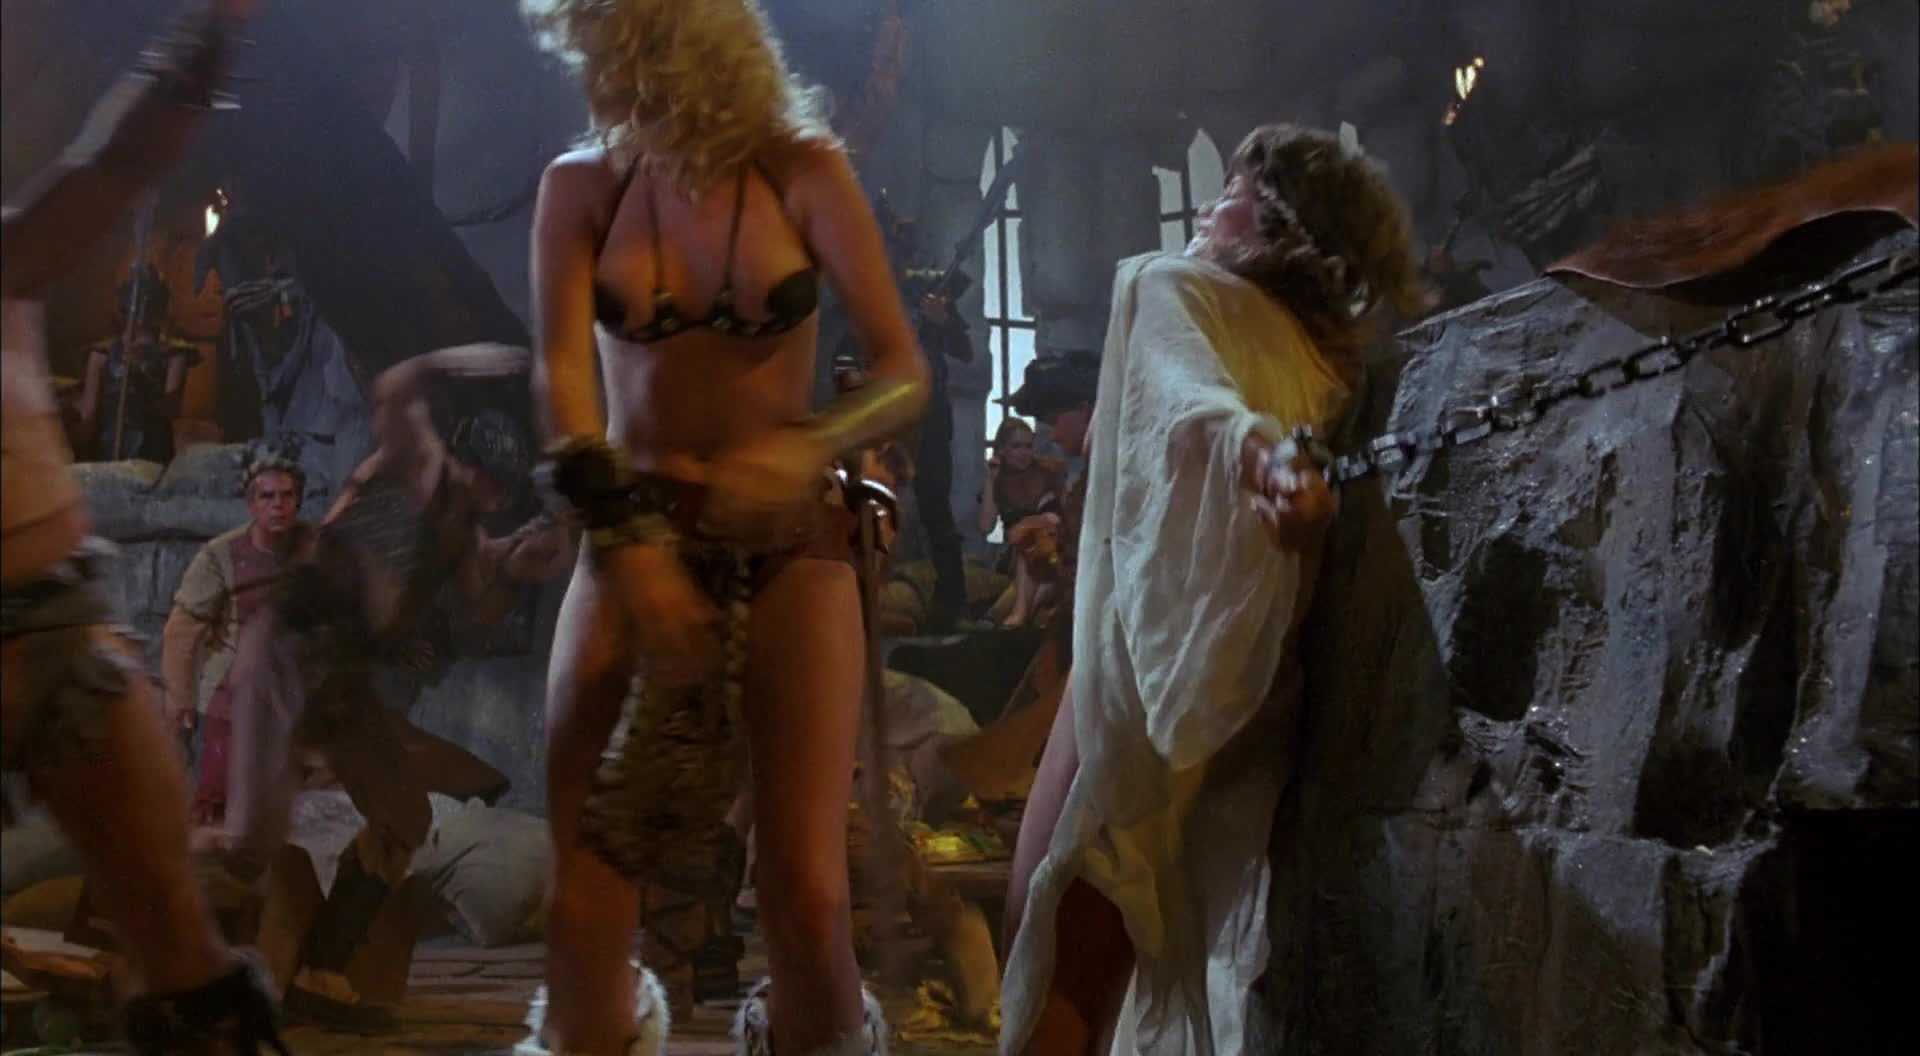 Lana Clarkson and Barbi Benton - Deathstalker (1983) -- probably the best Gor movie ever made